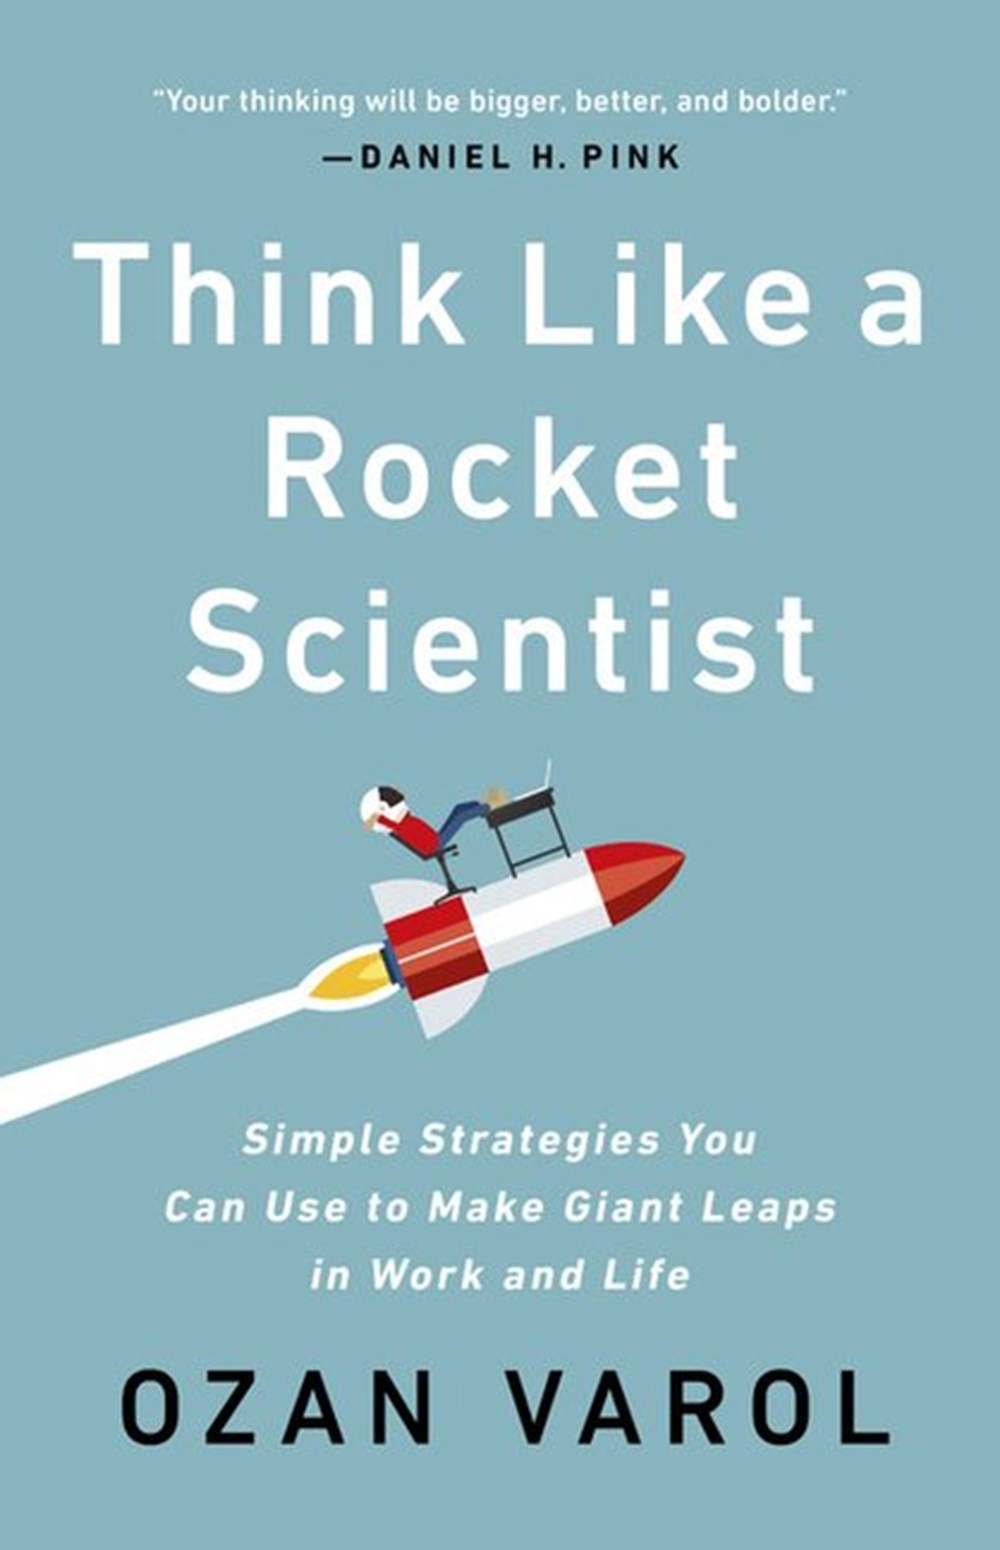 Think Like a Rocket Scientist Simple Strategies You Can Use to Make Giant Leaps in Work and Life